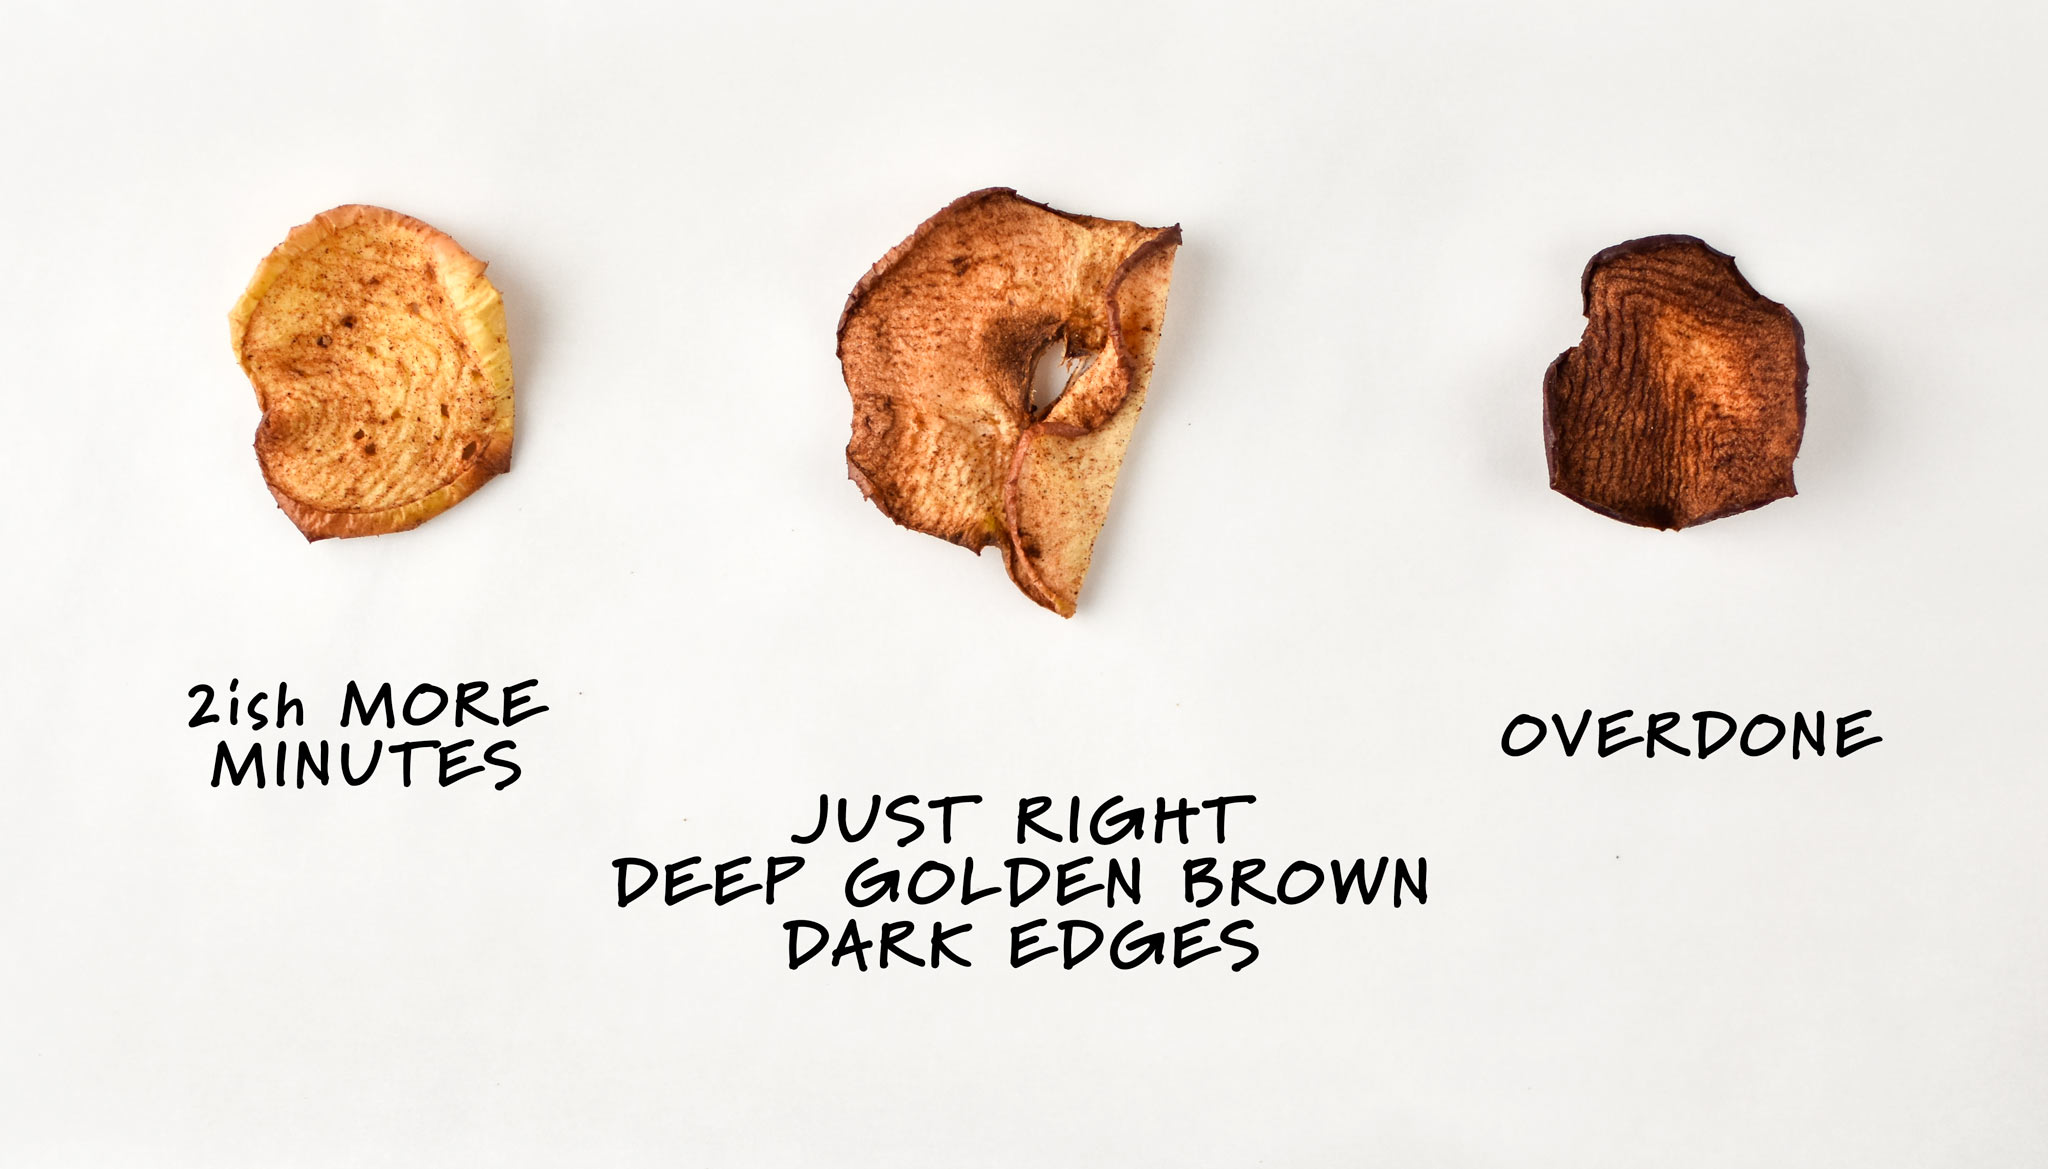 A diagram for how to make apple chips in an air fryer. Left needs 2ish more minutes, middle is just right with deep golden brown edges, and right is overdone.